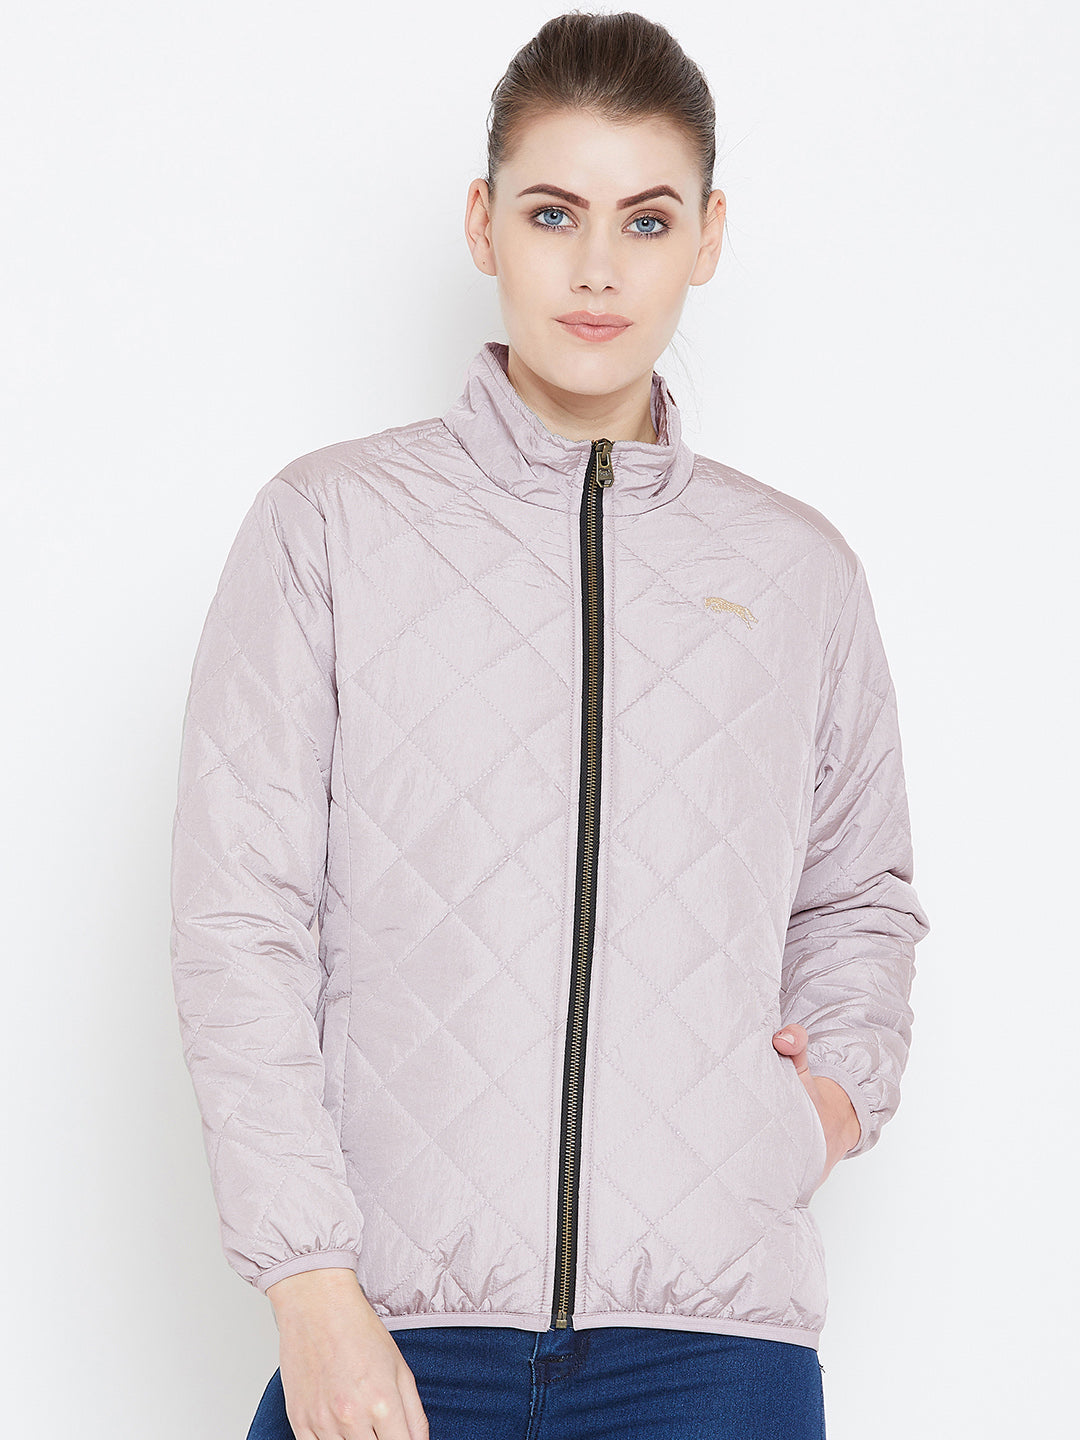 Womens Solid Silver Quilted Jacket - JUMP USA